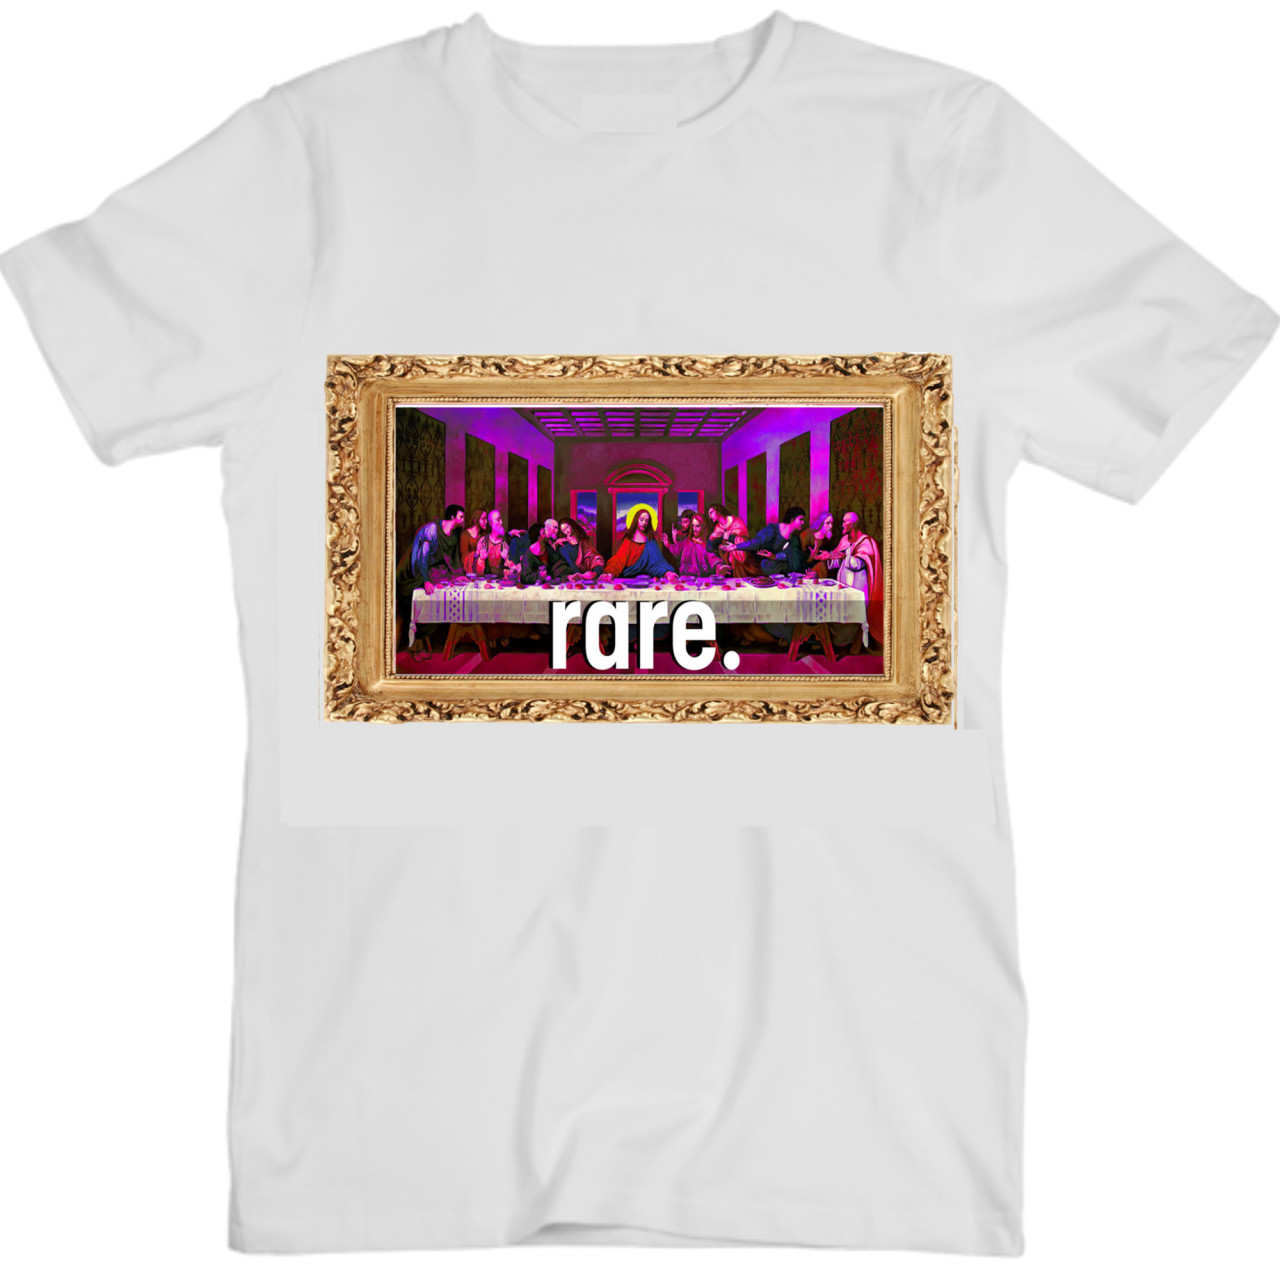 swaggerparis:  EVERYMAN's rare.supper tee. See more here: http://wp.me/pYwTW-gEm